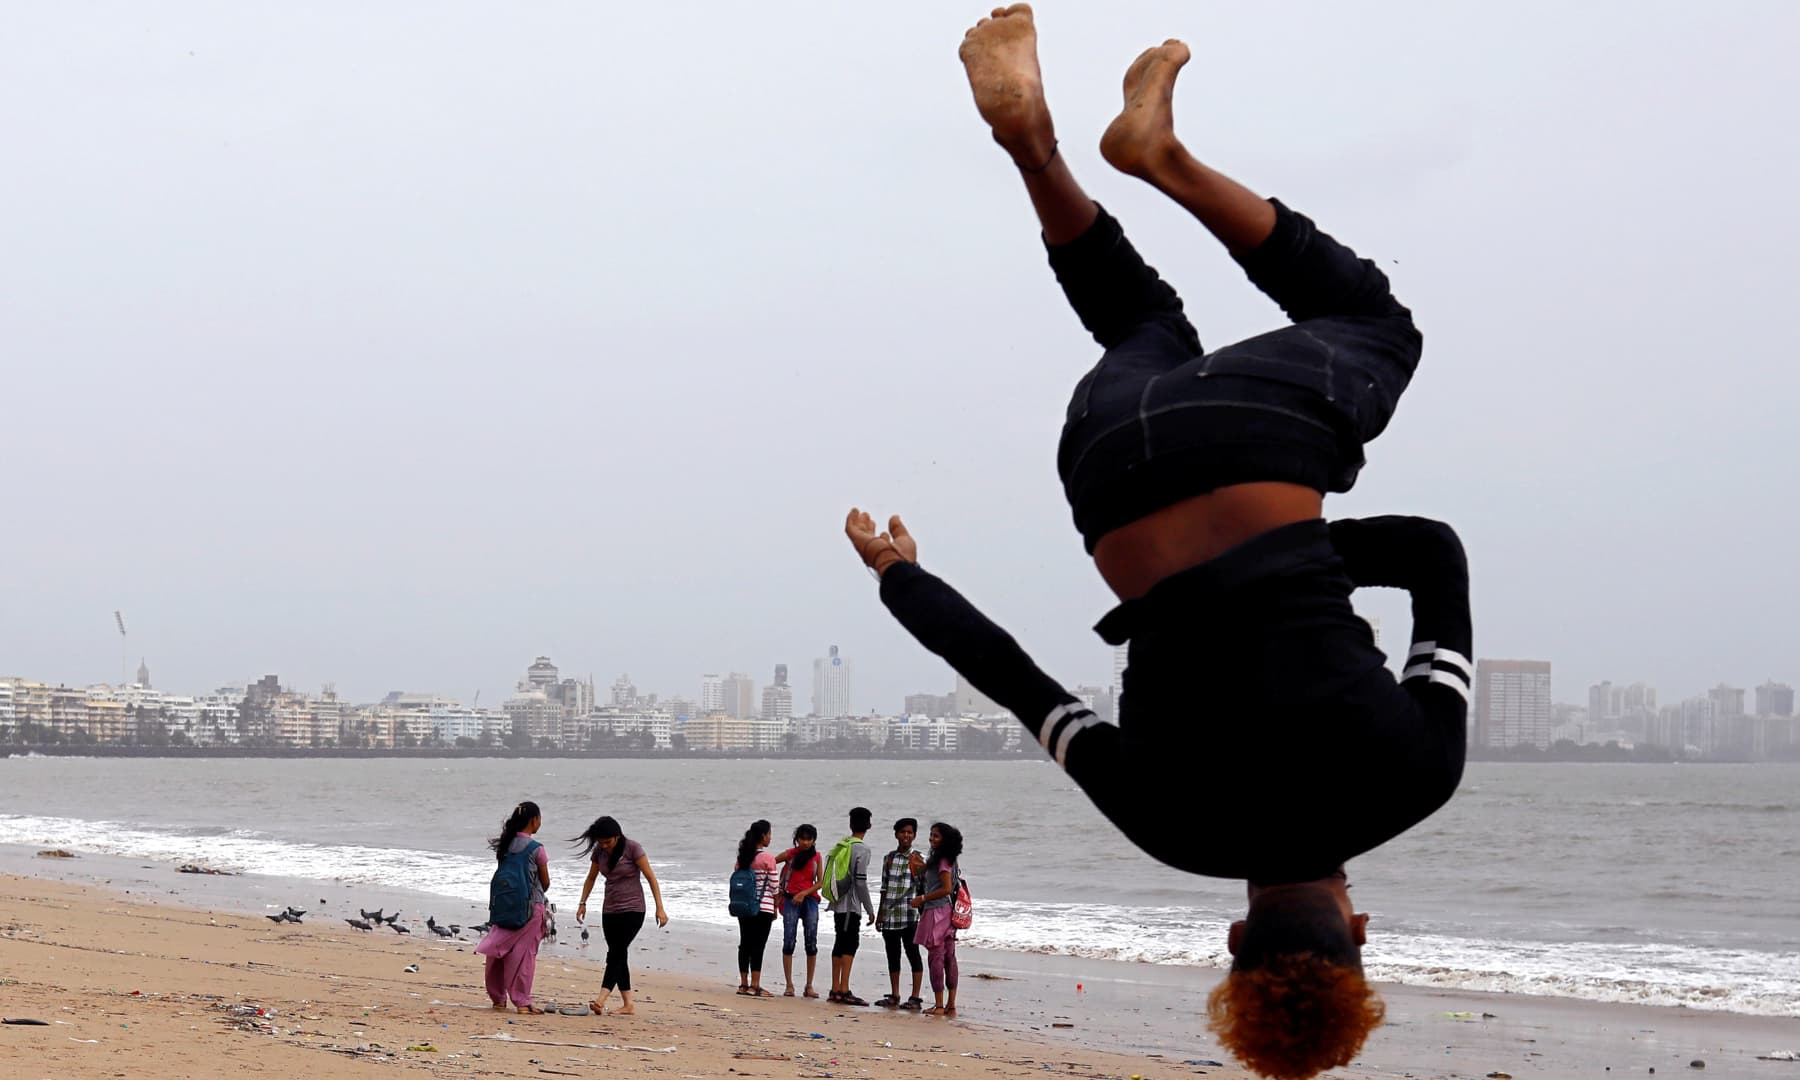 Beachgoers stroll as a boy practices somersaulting on a beach in Mumbai, India, July 12, 2018. — Reuters/Danish Siddiqui